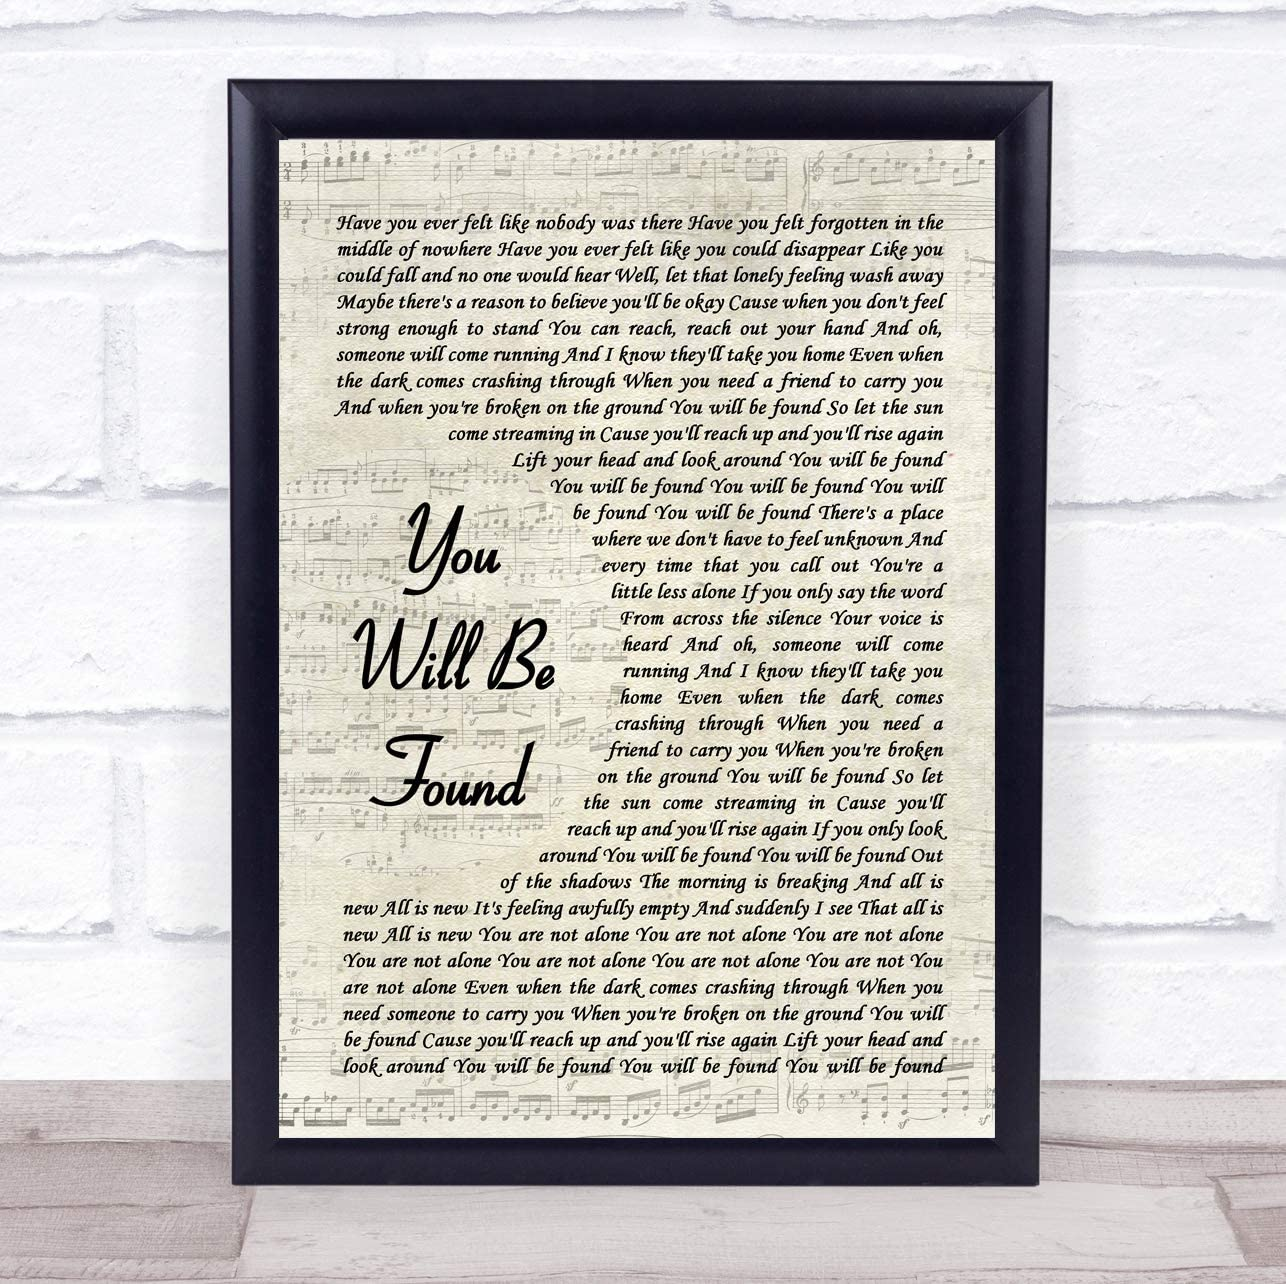 Amazon Com You Will Be Found Vintage Script Song Lyric Quote Music Poster Gift Present Art Print Office Products C lift your head and look around. amazon com